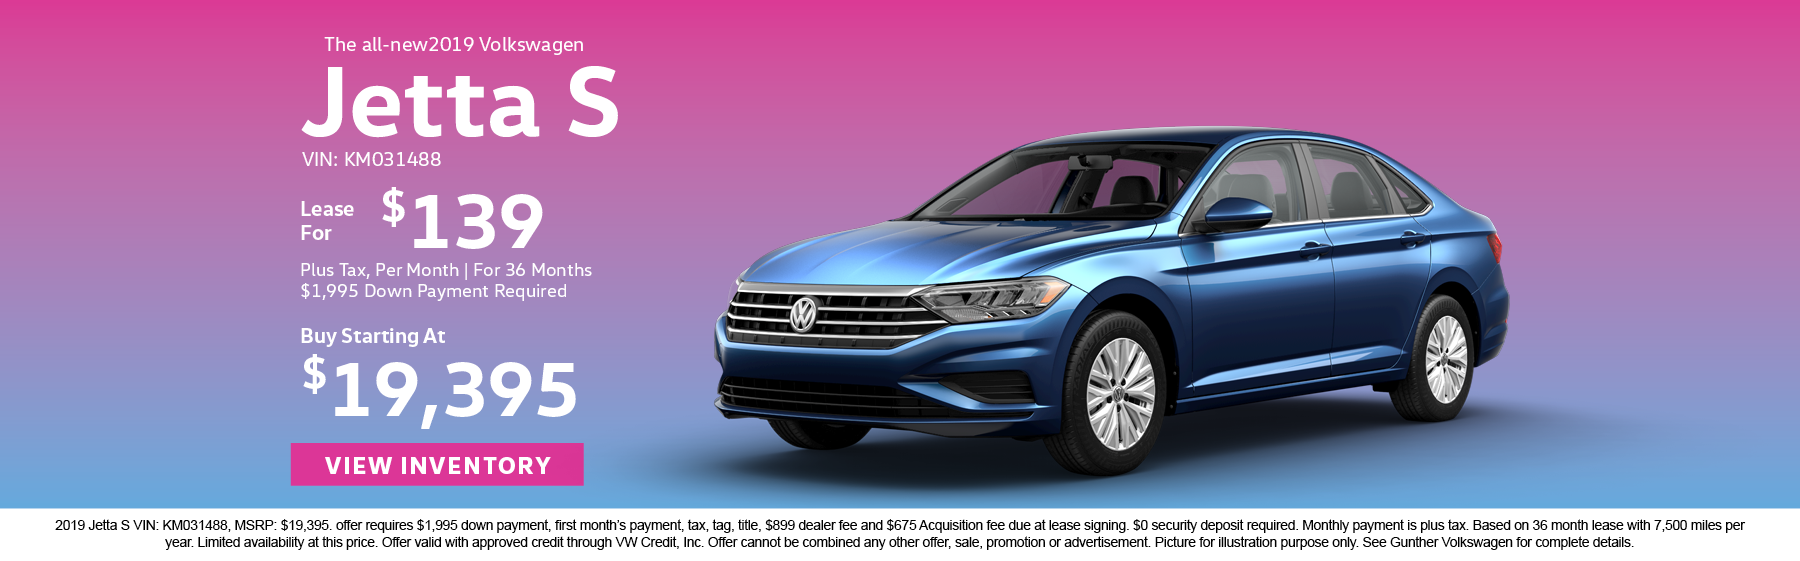 Lease the all-new 2019 Volkswagen Jetta S for $139 plus tax for 36 months. $1,995 Down payment required. Buy starting at $19,395.